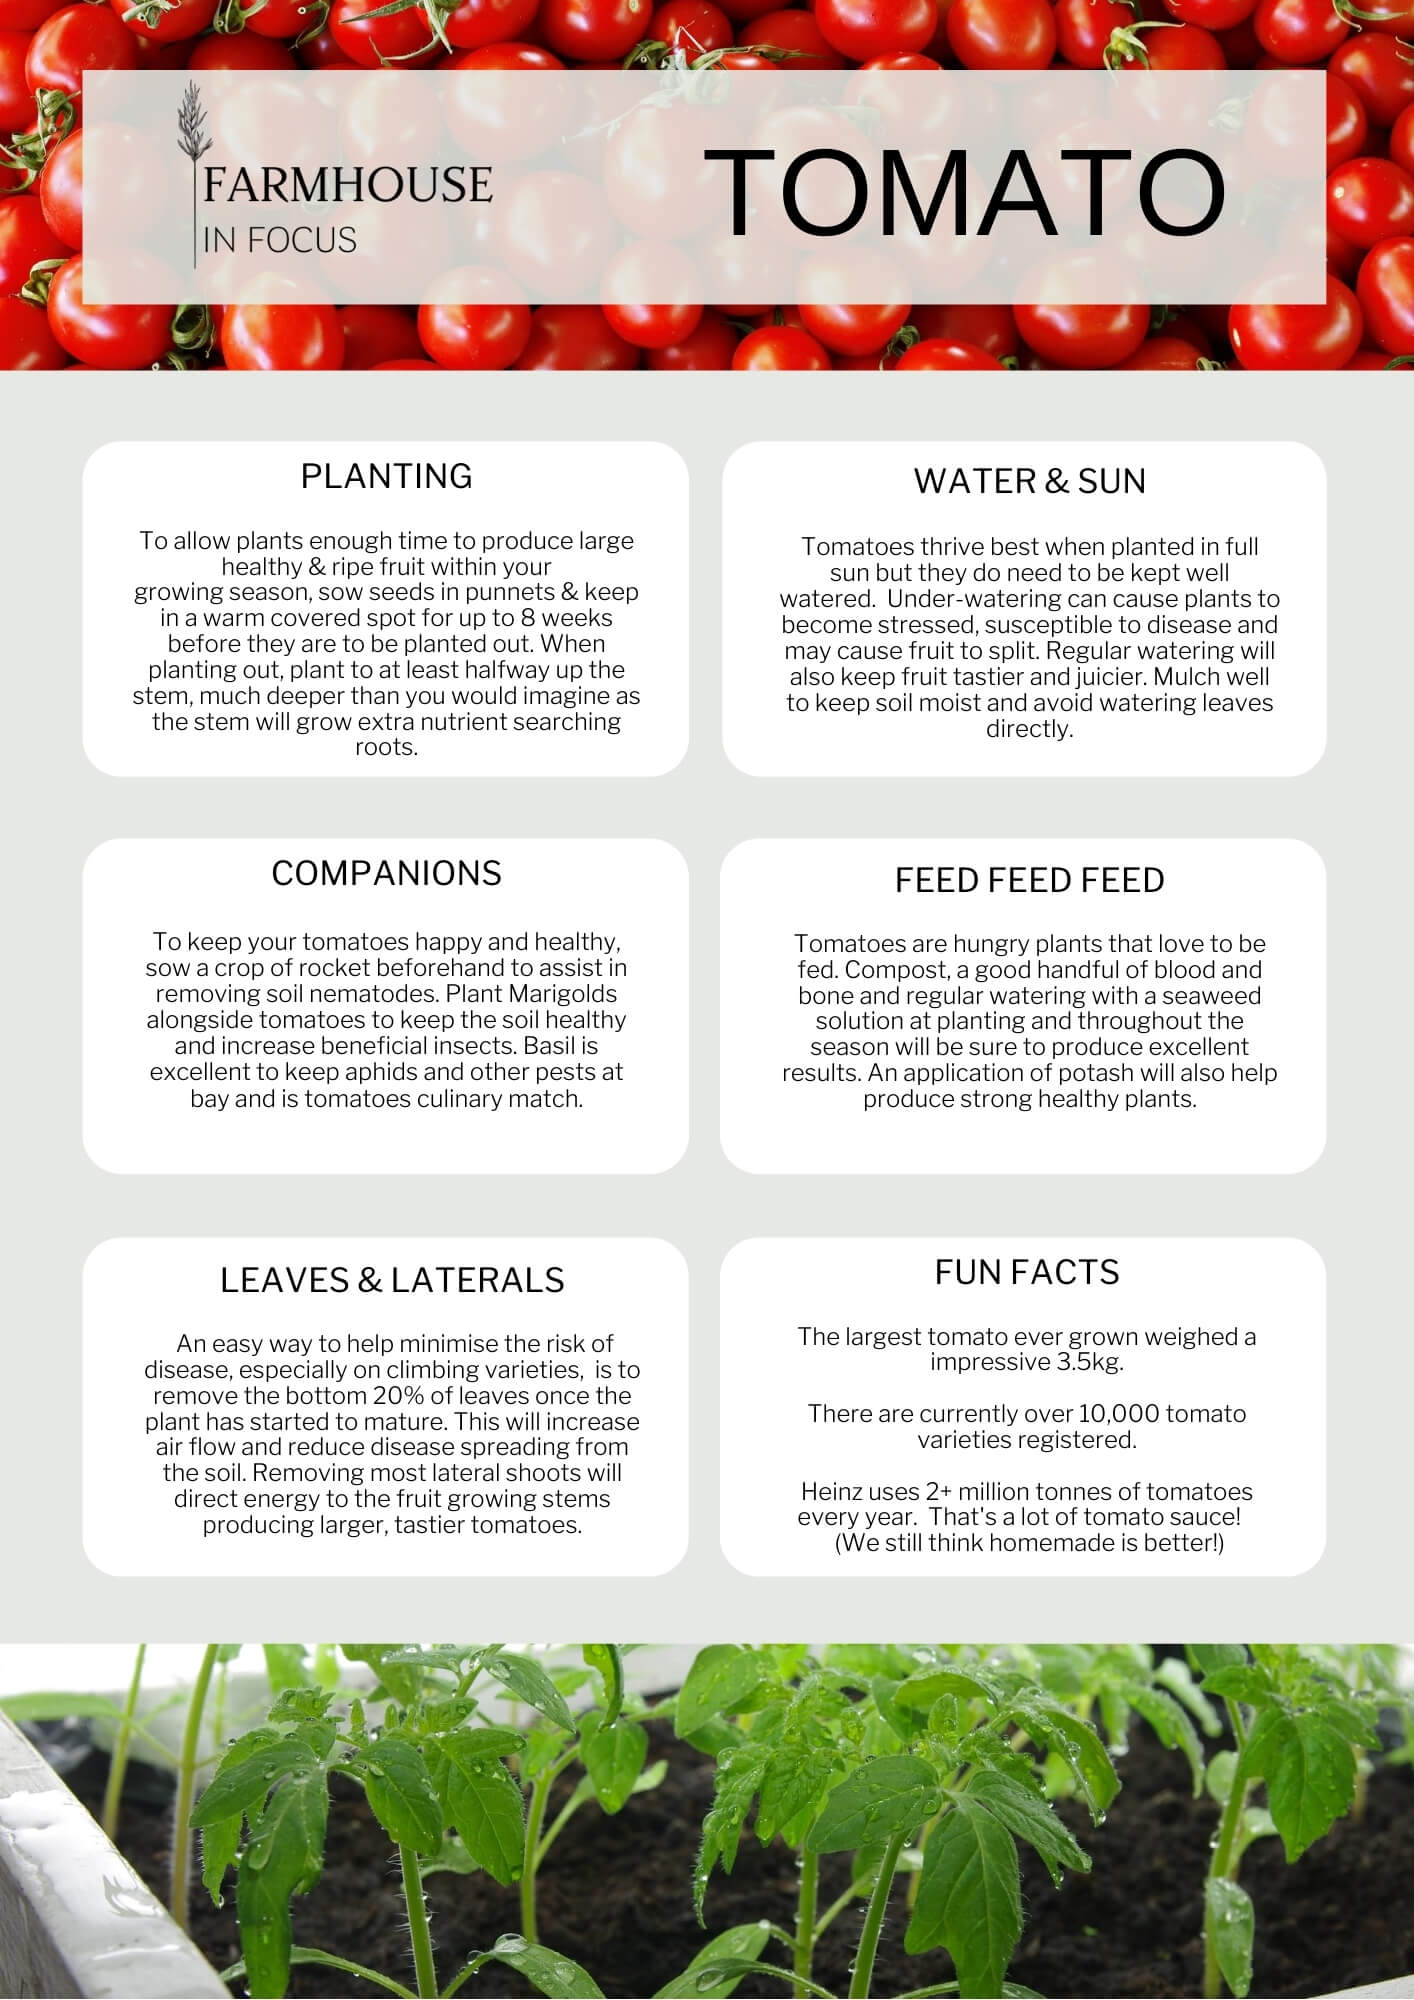 Tips on growing tomatoes in your vegetable garden. Information sheet